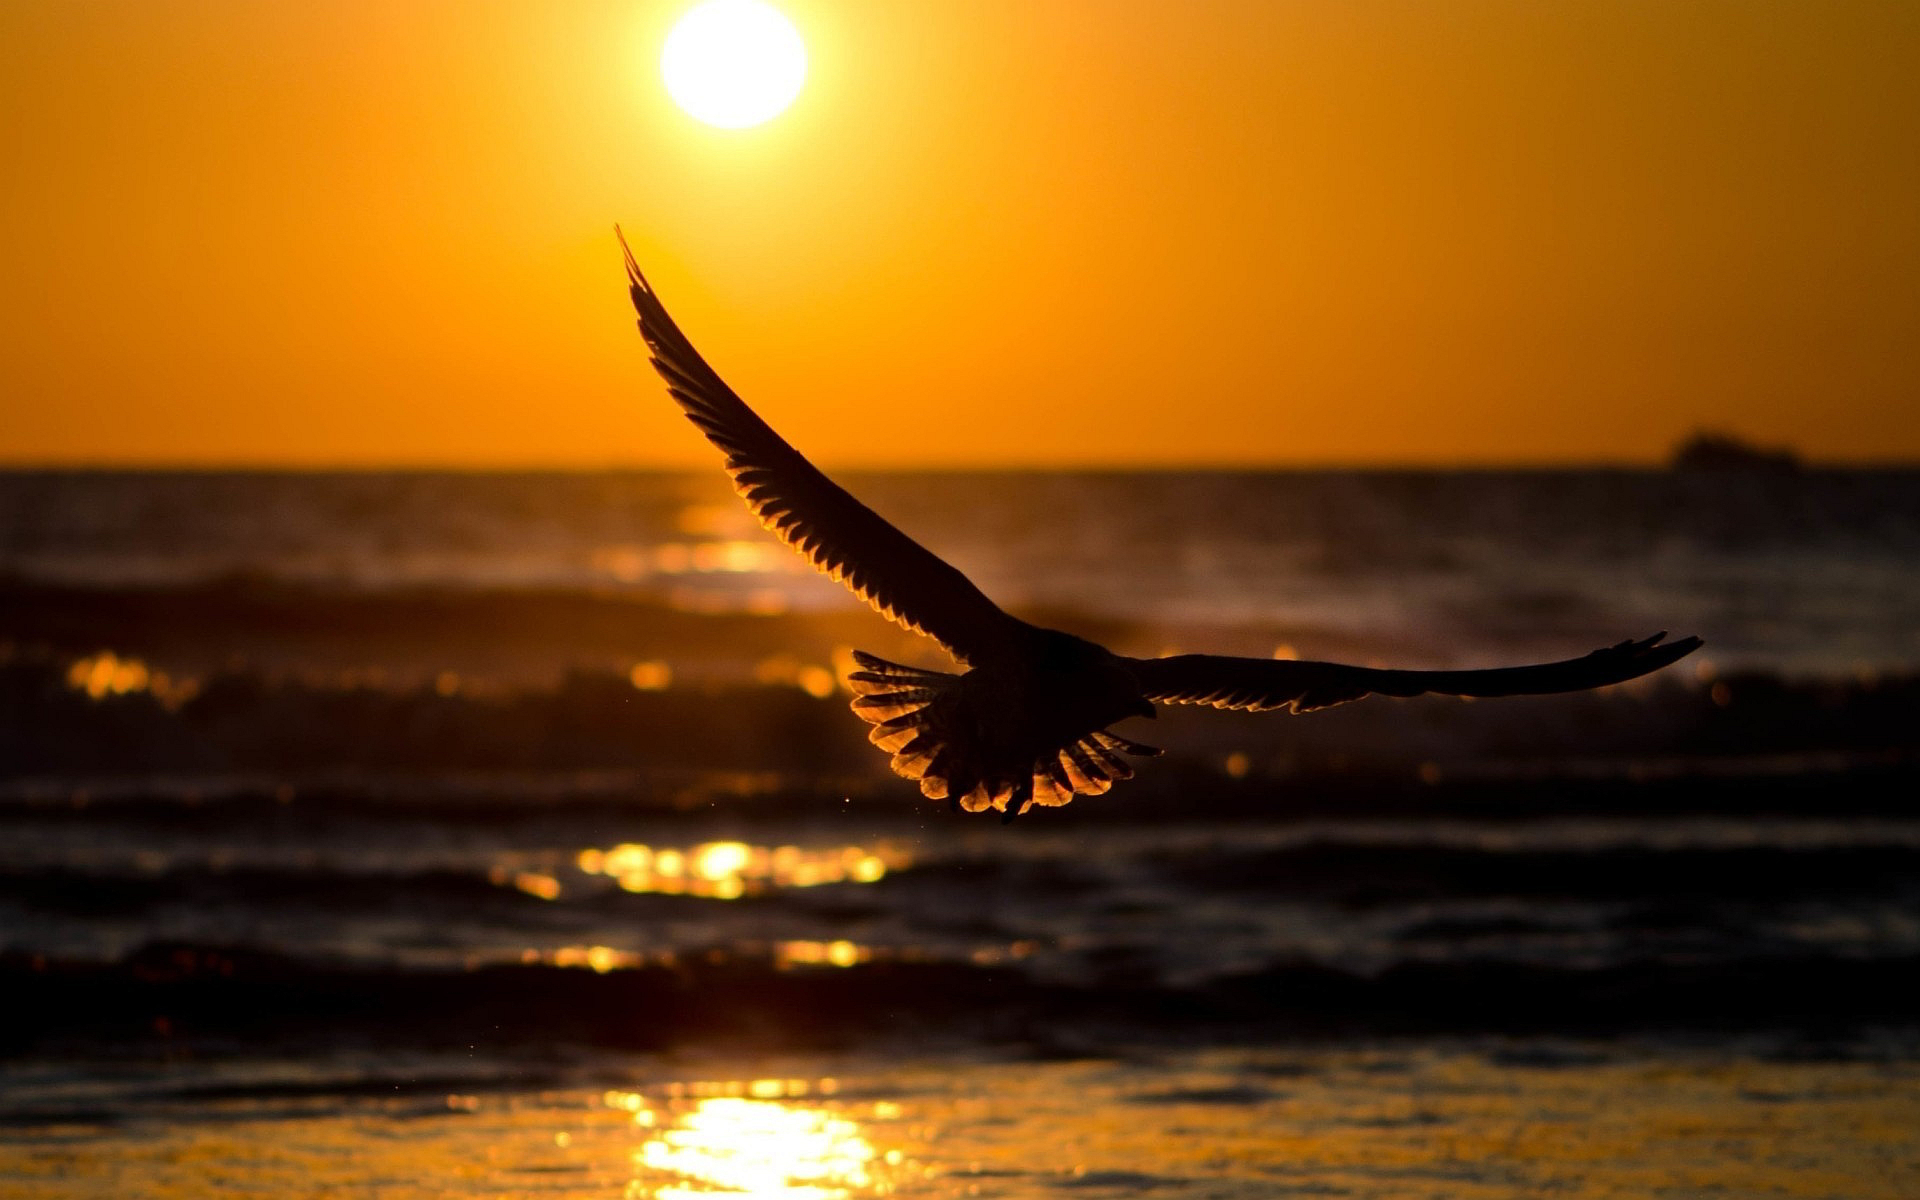 Flying bird in sunset